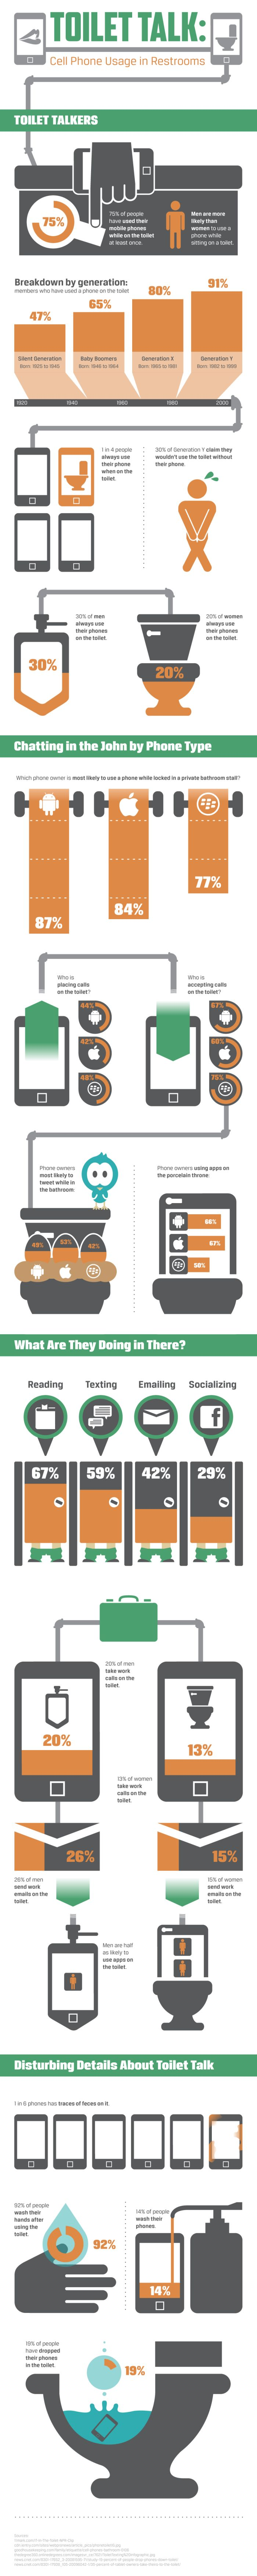 Using Your Phone While You Poop (infographic)